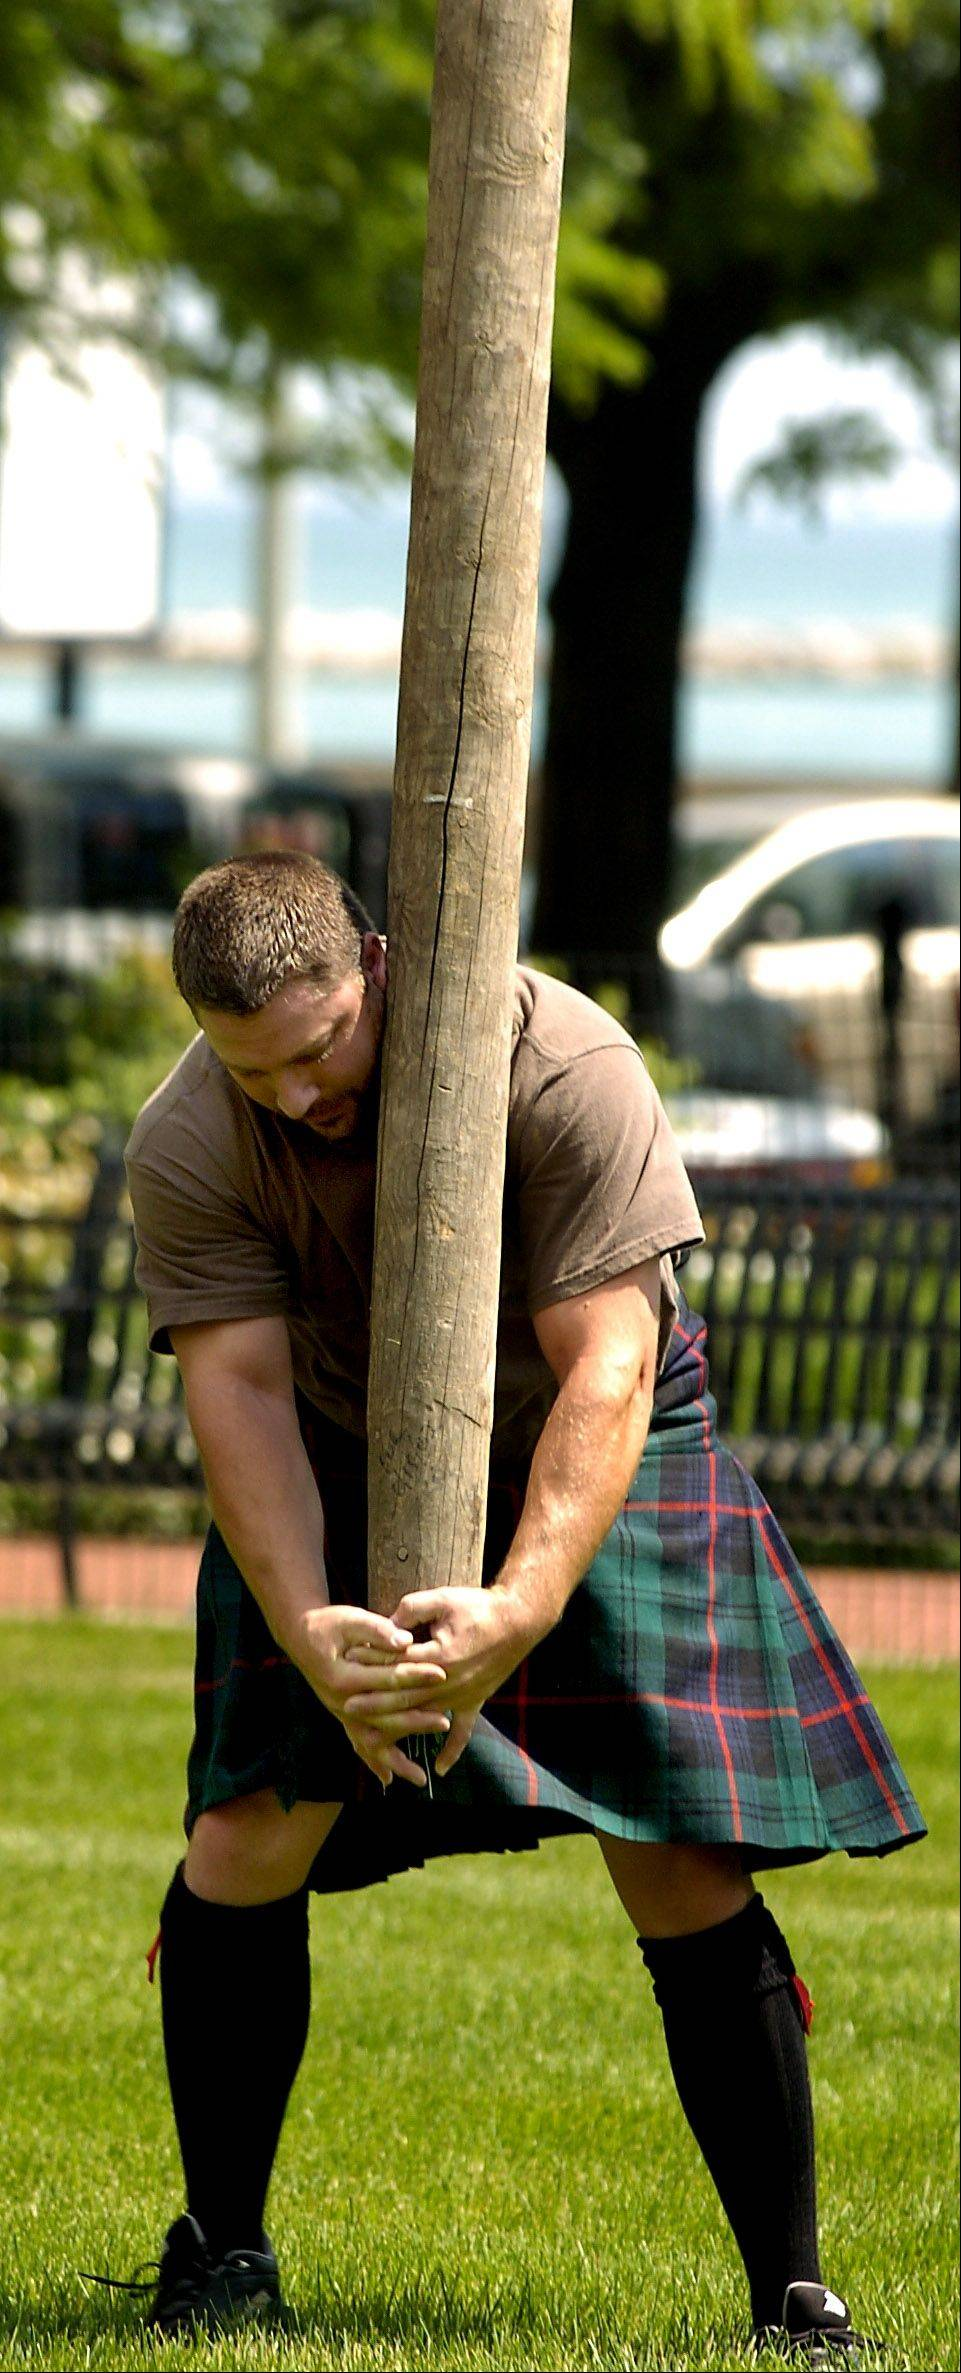 The caber toss is one of the field sports at the Highland Games and Scottish Festival, being held this yaer at Hamilton Lakes in Itasca.